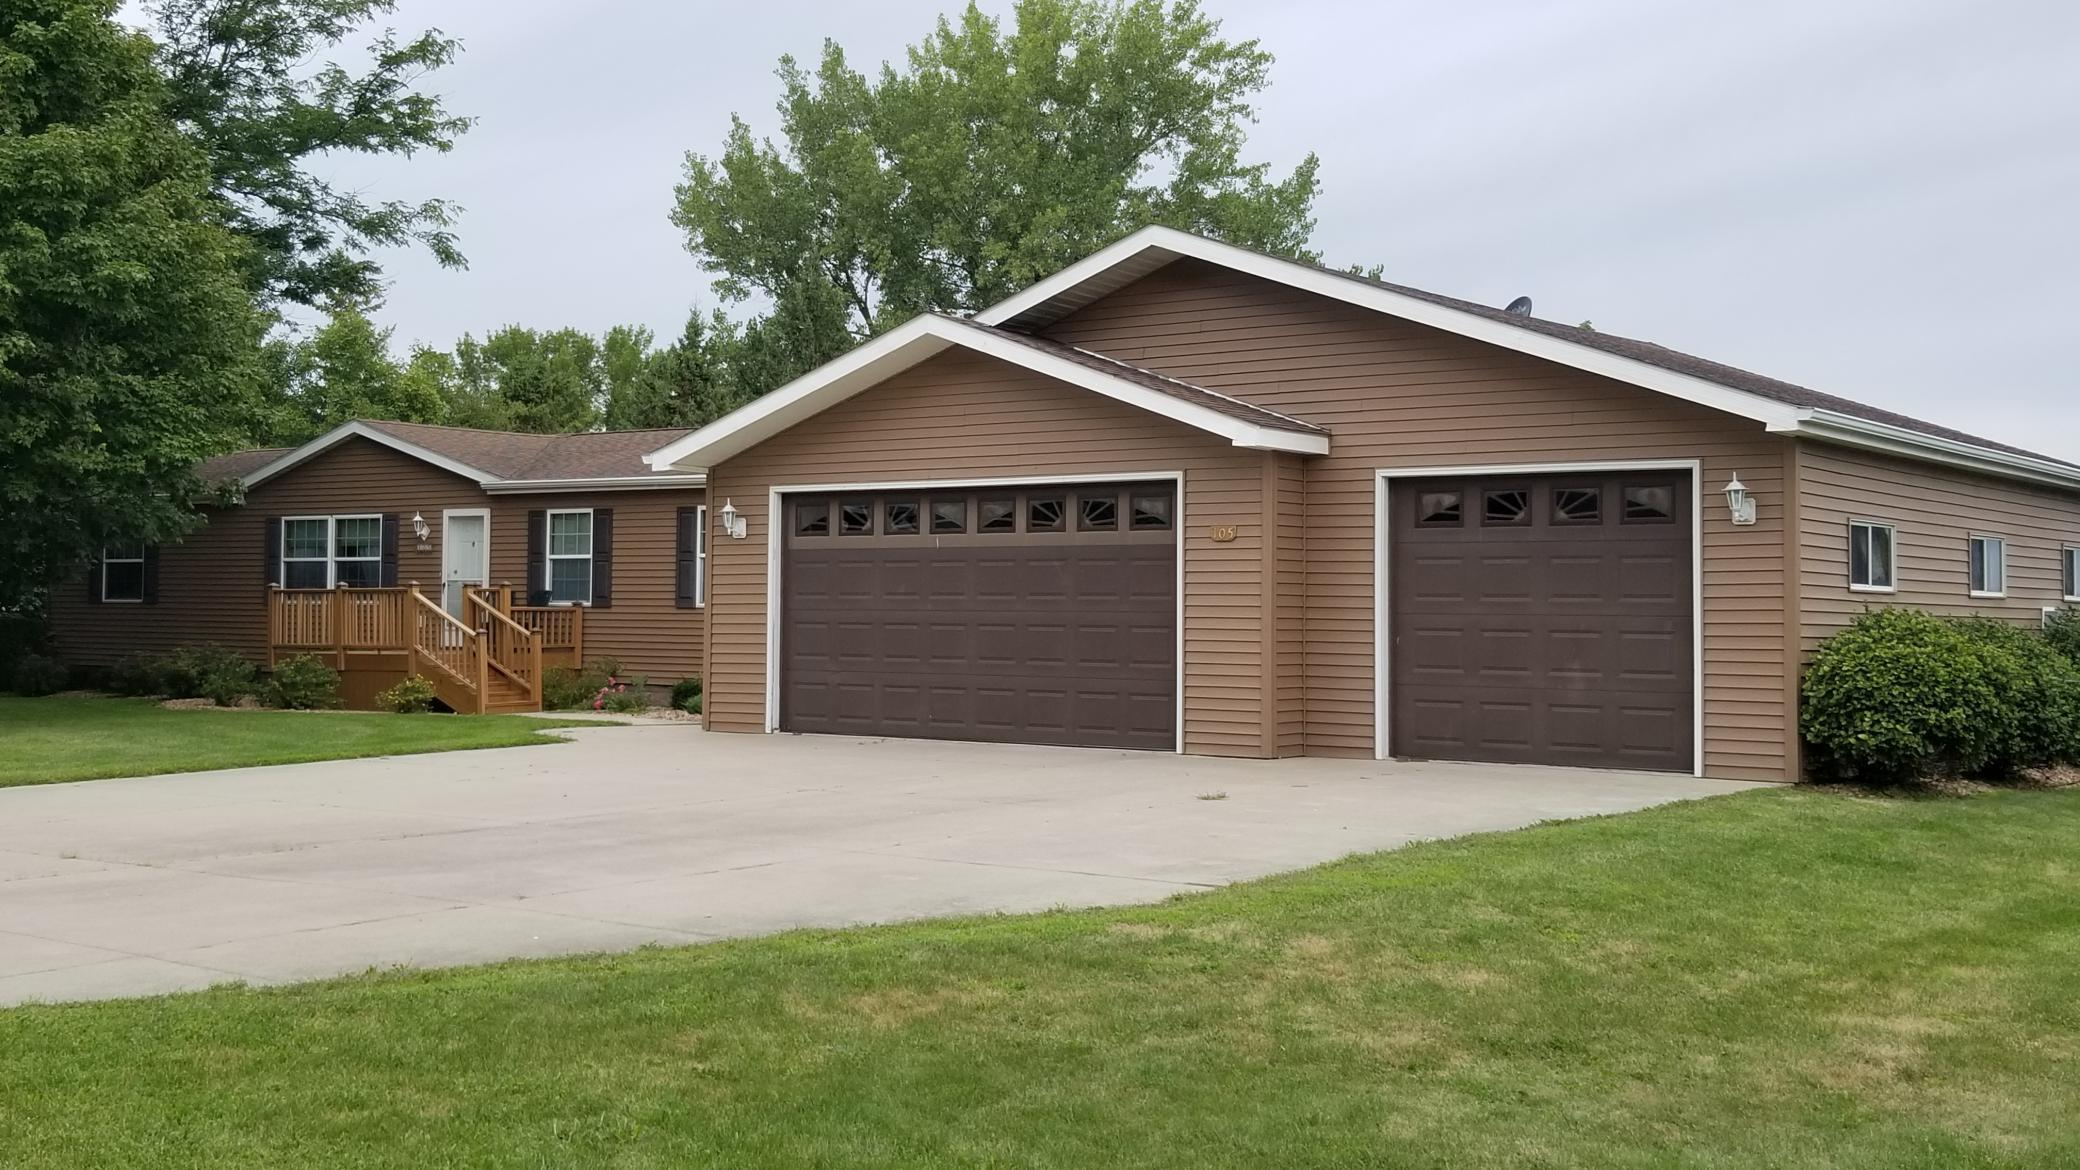 105 2nd Street Property Photo - Elkton, MN real estate listing